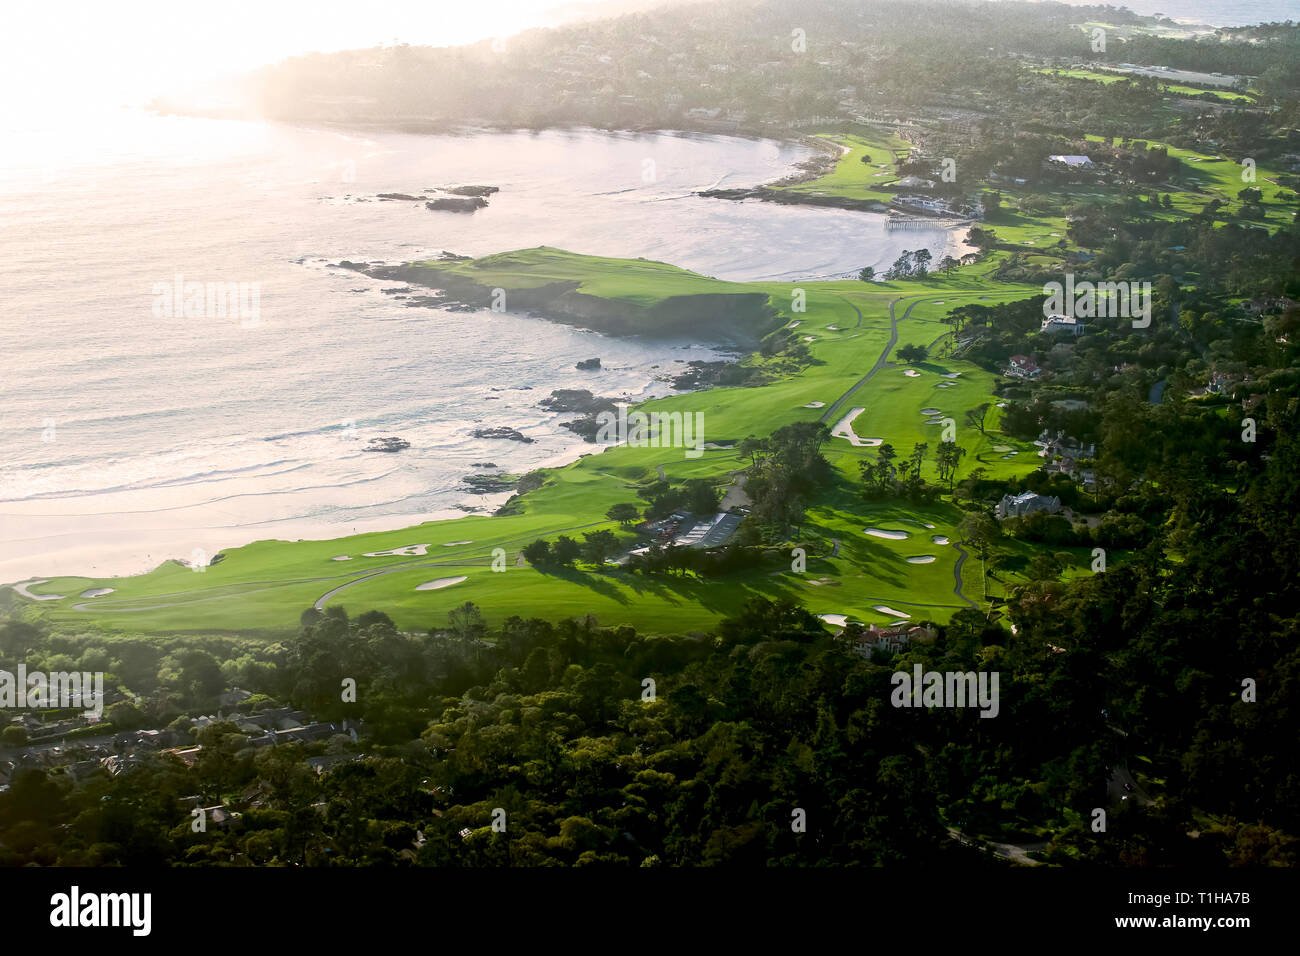 21st March, 2019  Pebble Beach, California, USA Aerial view over the iconic Pebble Beach Golf lLinks - venue for the 2019 US Open golf Championship as - Stock Image